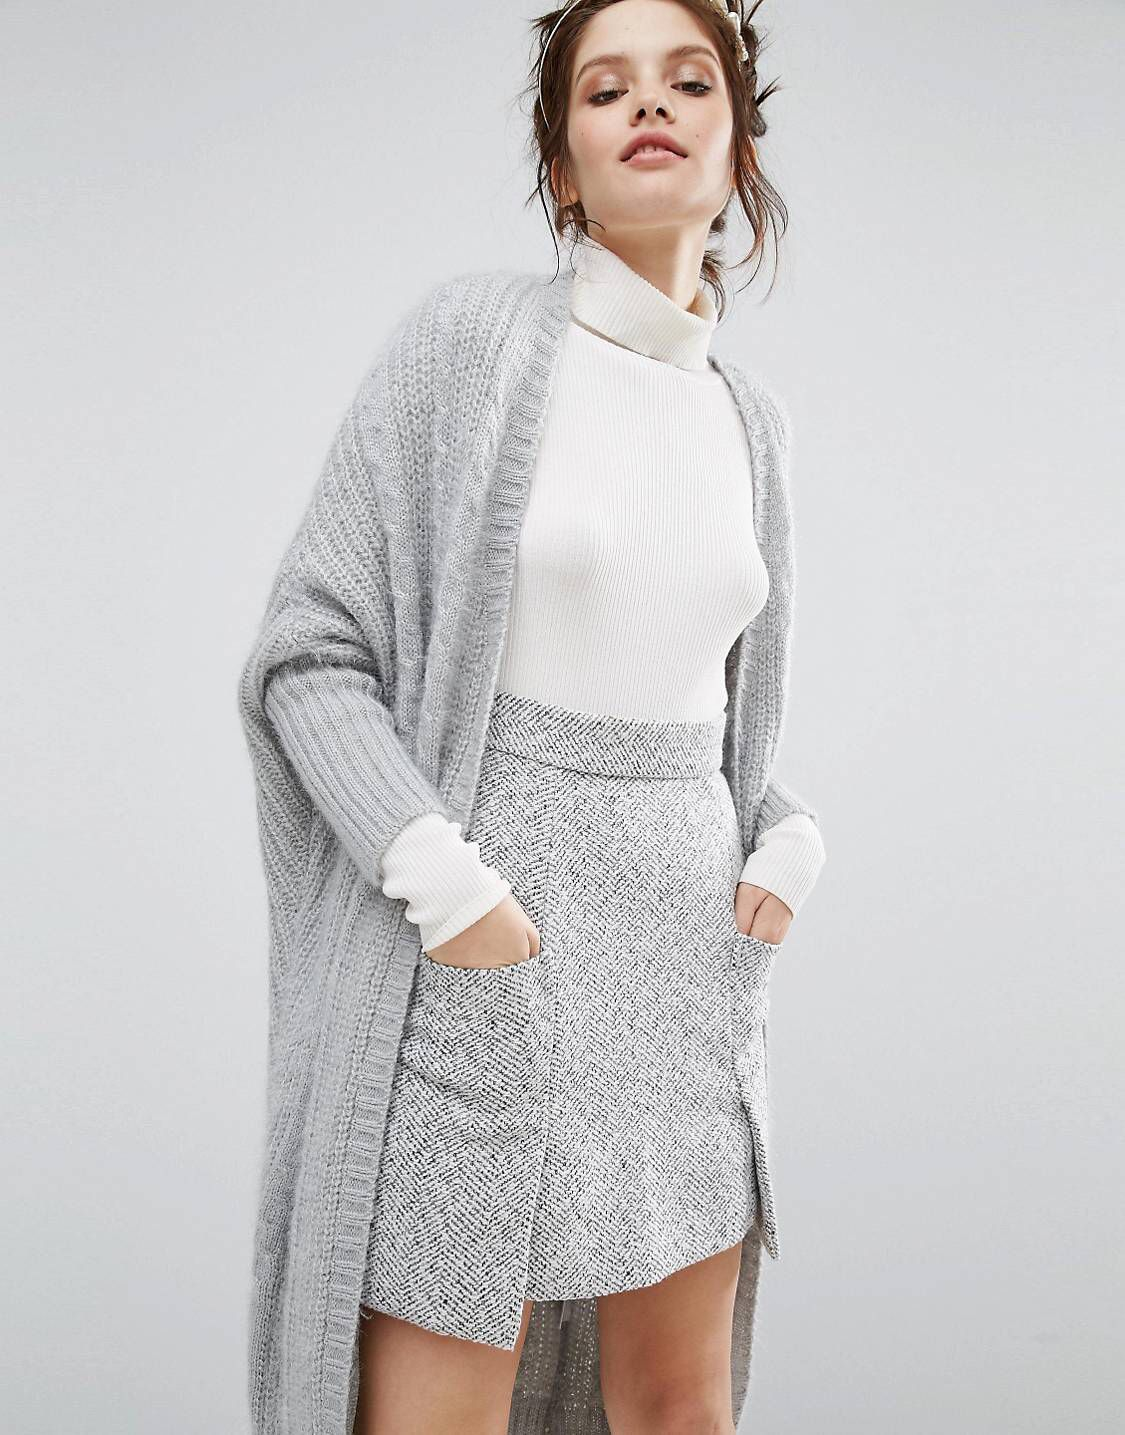 Willow and Paige Maxi Cable Knit Cardigan | Currently | Pinterest ...